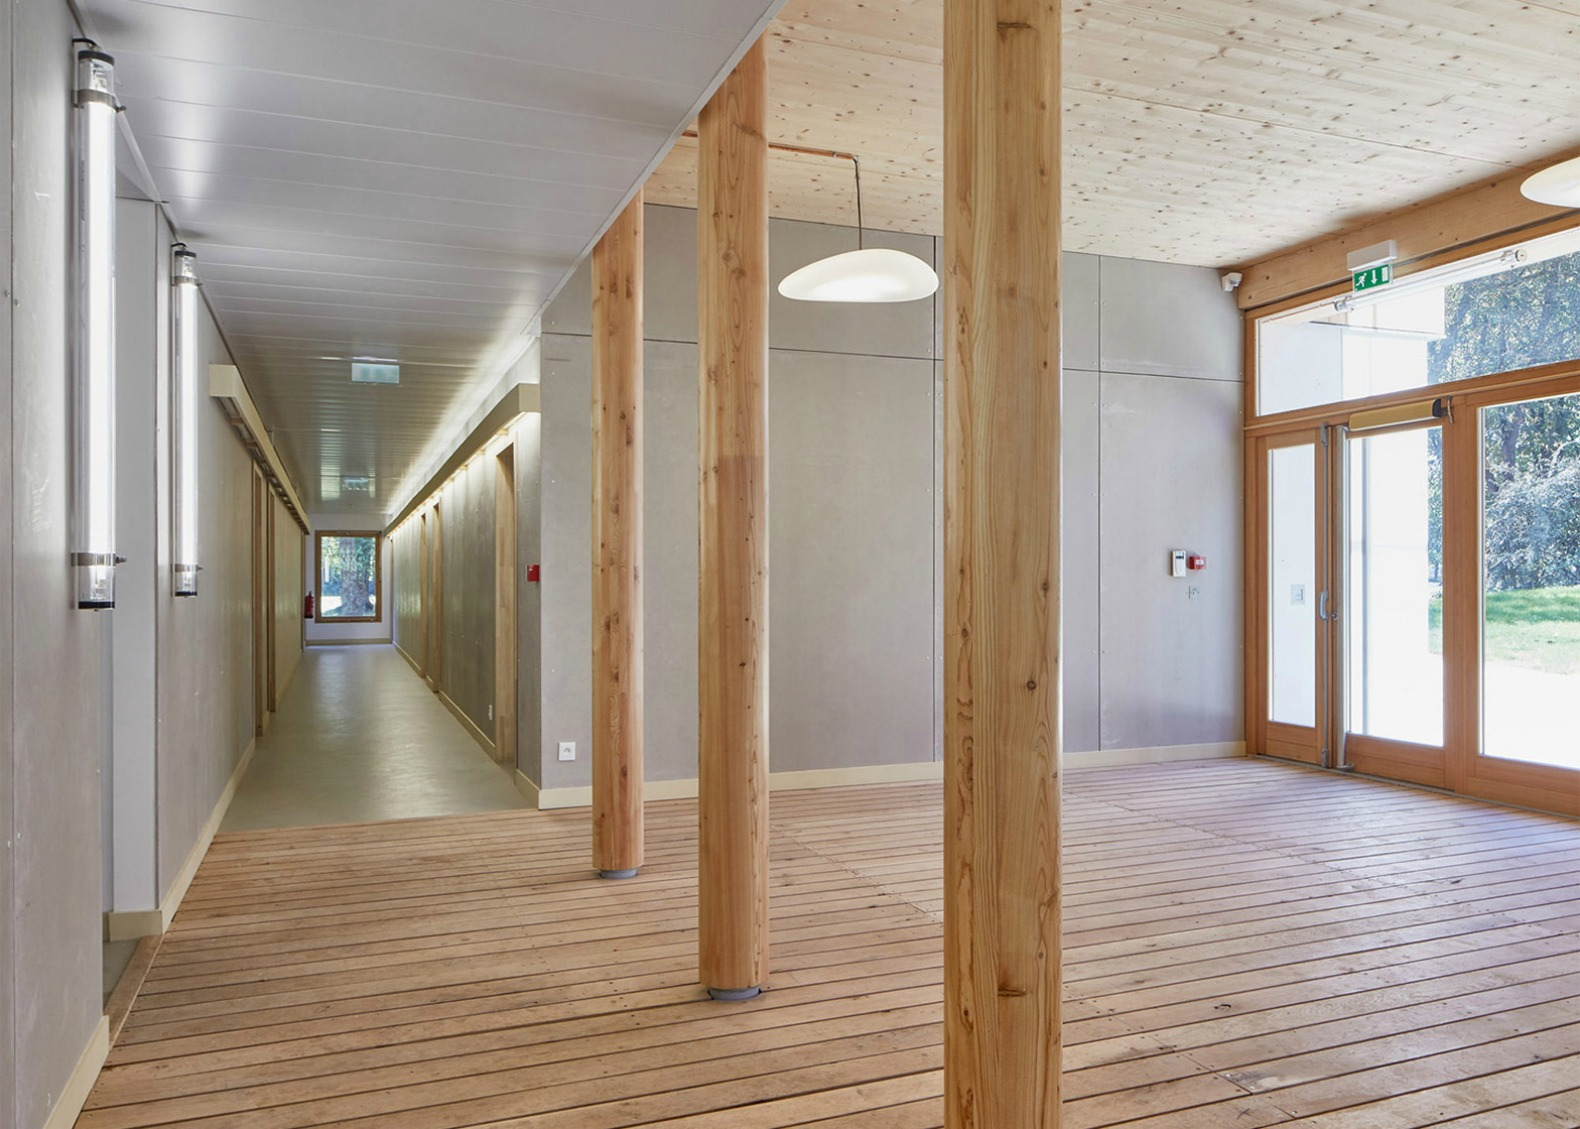 Belus & Hénocq Architectes, Maison d'Education de la Légion d'Honneur, Saint Denis Boarding School, timber architecture, timber clad buildings, french archictects, school design, educational buildings, urban design, wooden buildings, timber buildings,